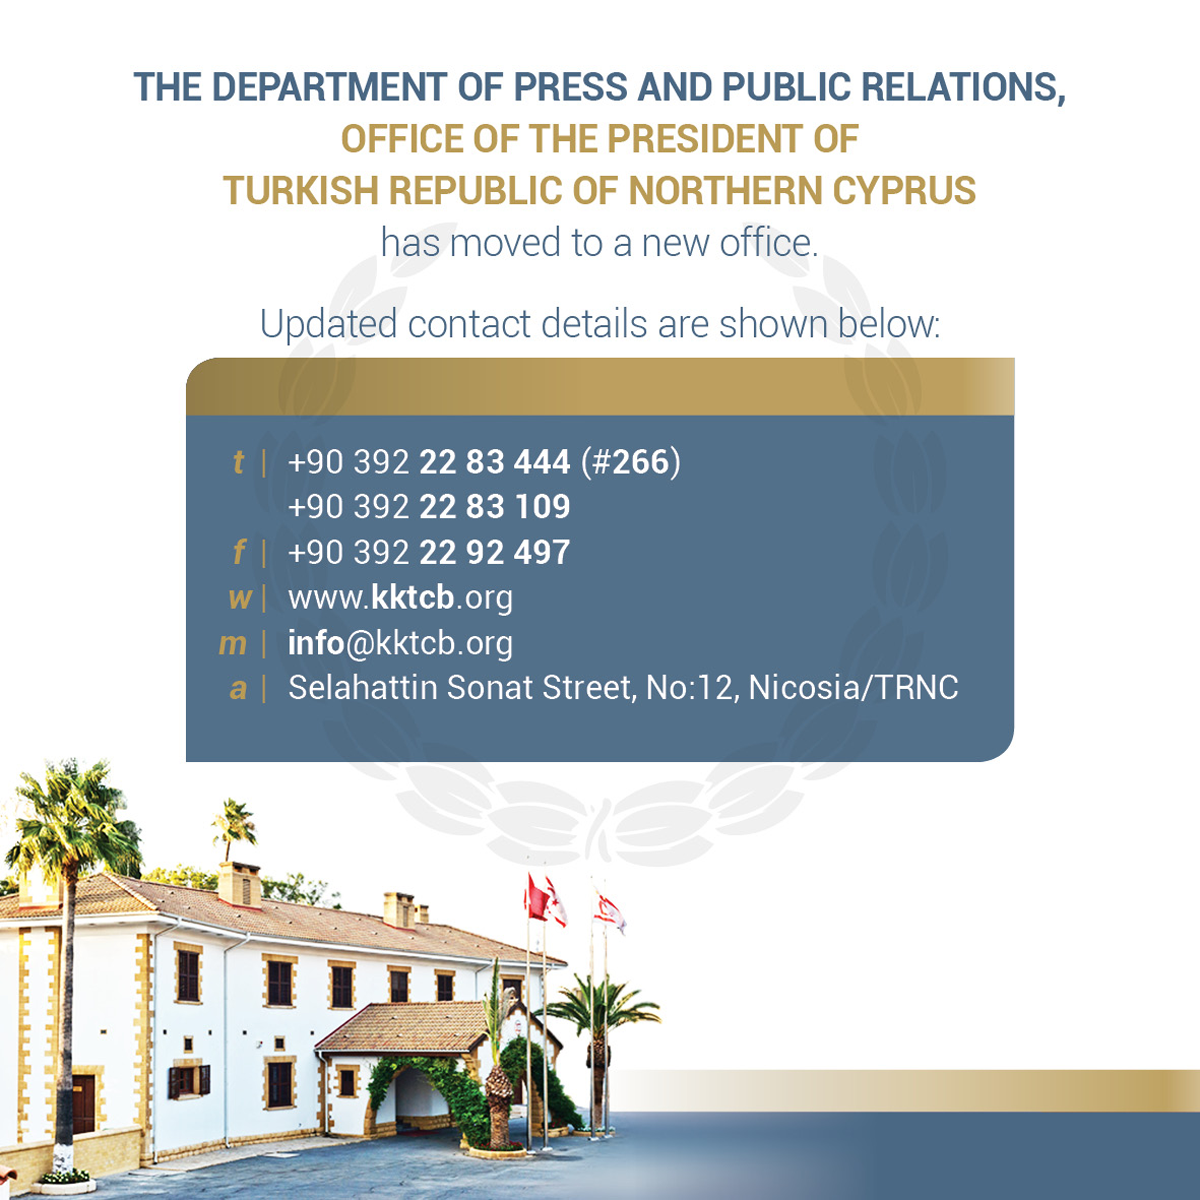 The presidential Press and Public Relations Office has moved to a new office. https://t.co/a77YZzRZ5U